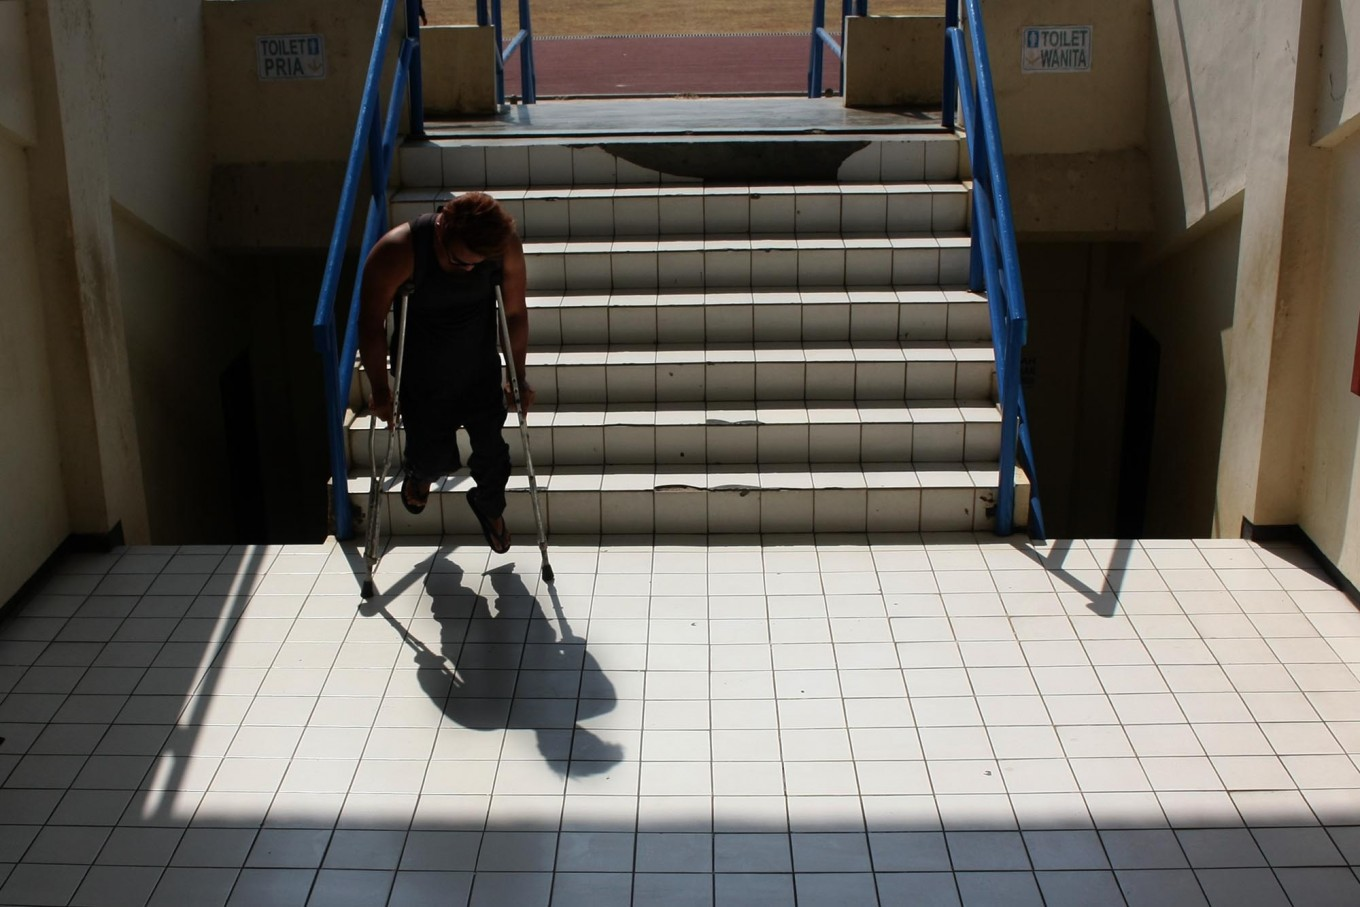 A paralympic athlete descends the stairs of the NPC training center after training exercises. JP/Maksum Nur Fauzan